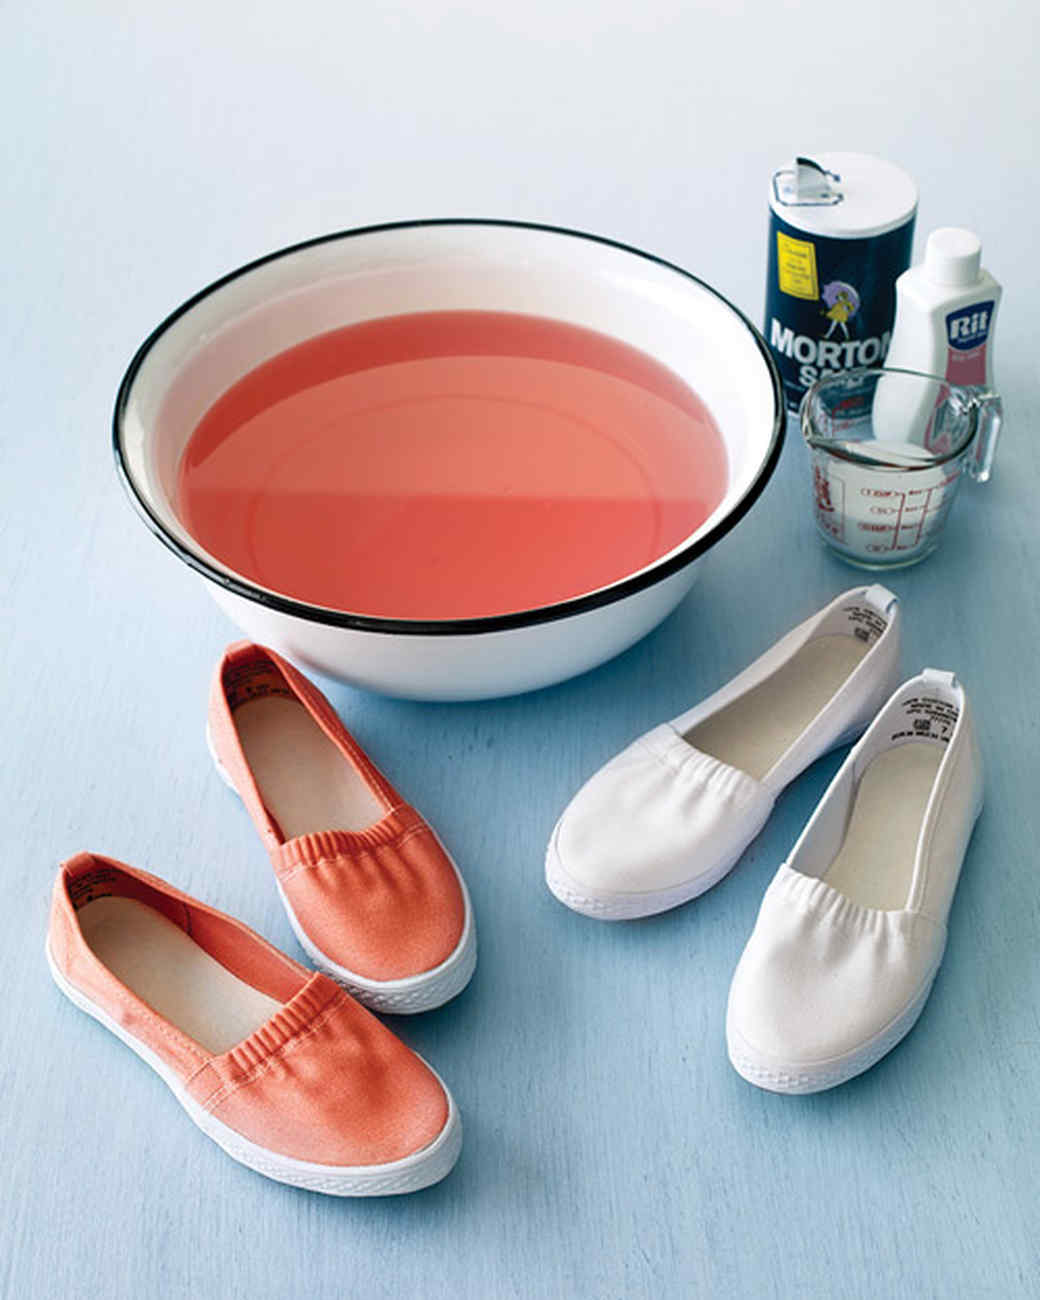 Air Dry Or Dryer Shoes